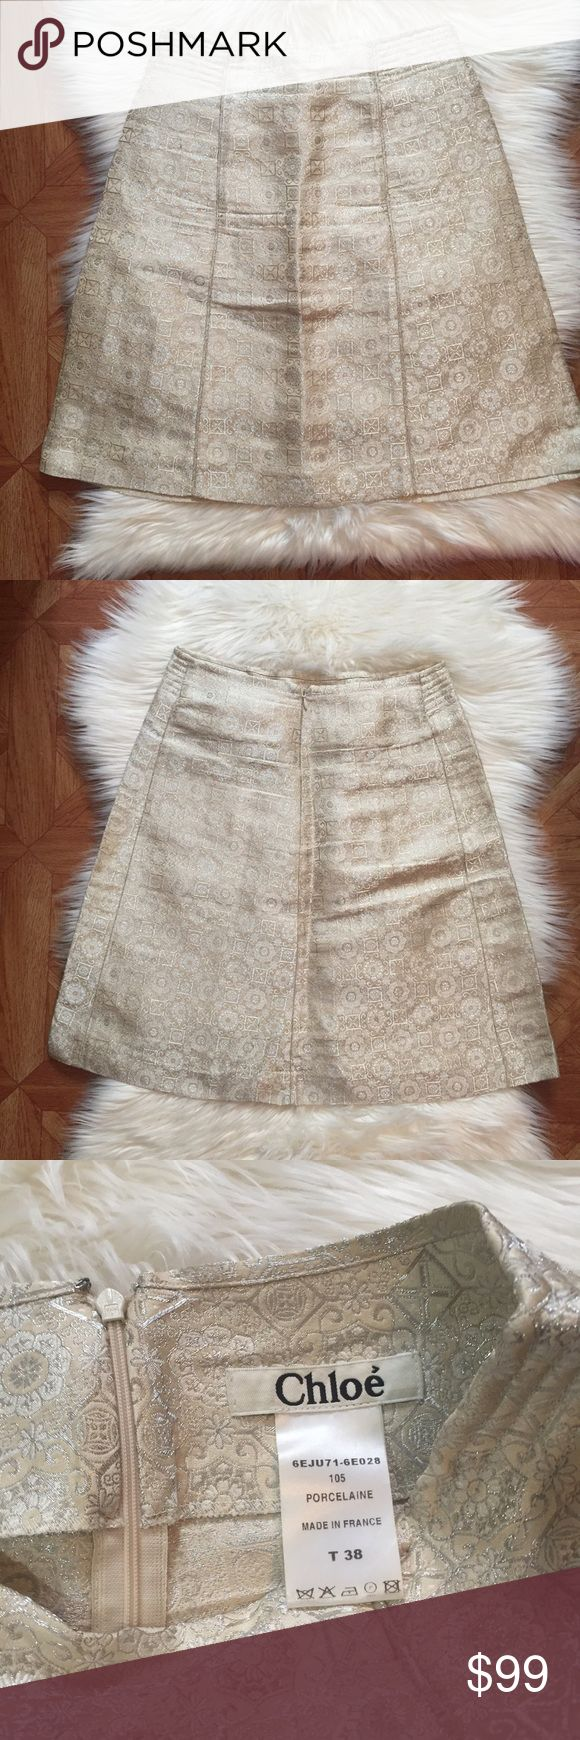 Chloé A-Line metallic skirt A-line porcelain skirt with metallic detail• in excellent condition • size 38 which translates to 6 US Chloe Skirts A-Line or Full